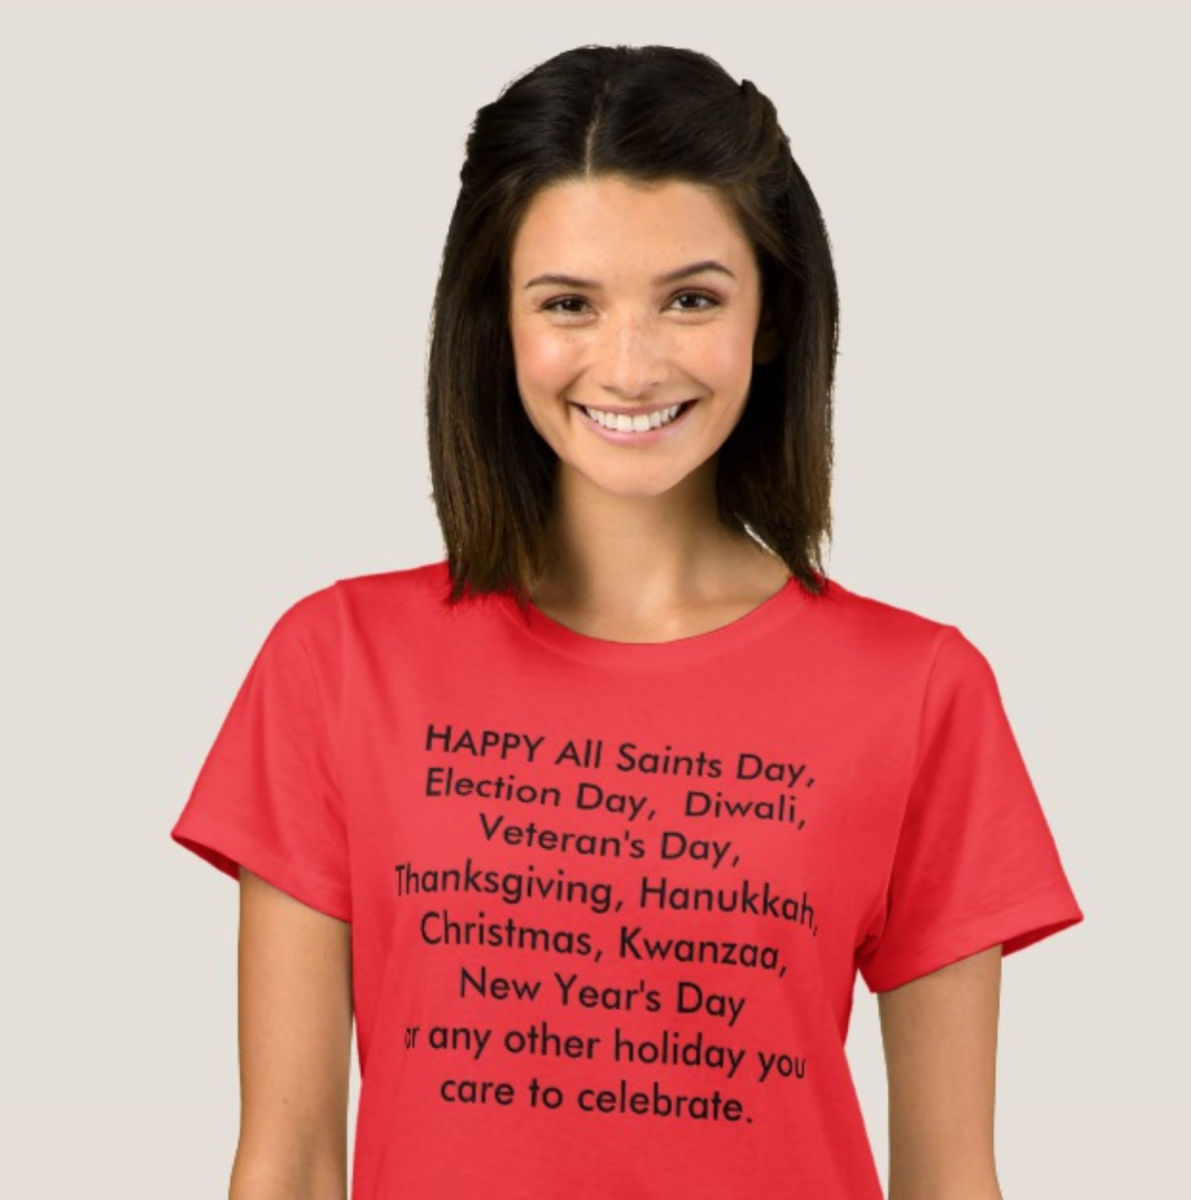 I even designed this shirt for myself using the Zazzle site so I could get my message out.